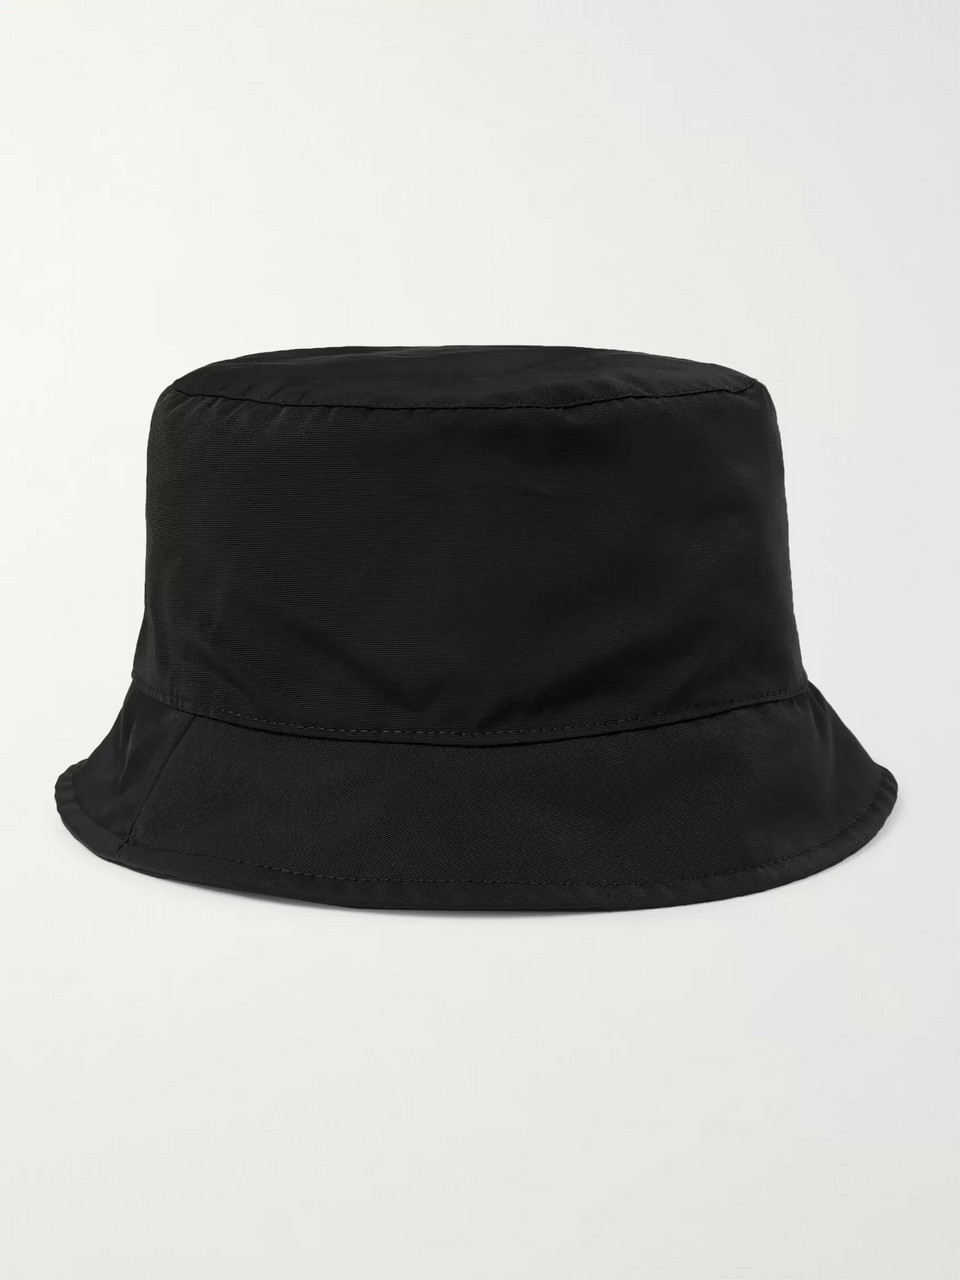 1017 ALYX 9SM Hunter Nylon and Cotton-Blend Bucket Hat